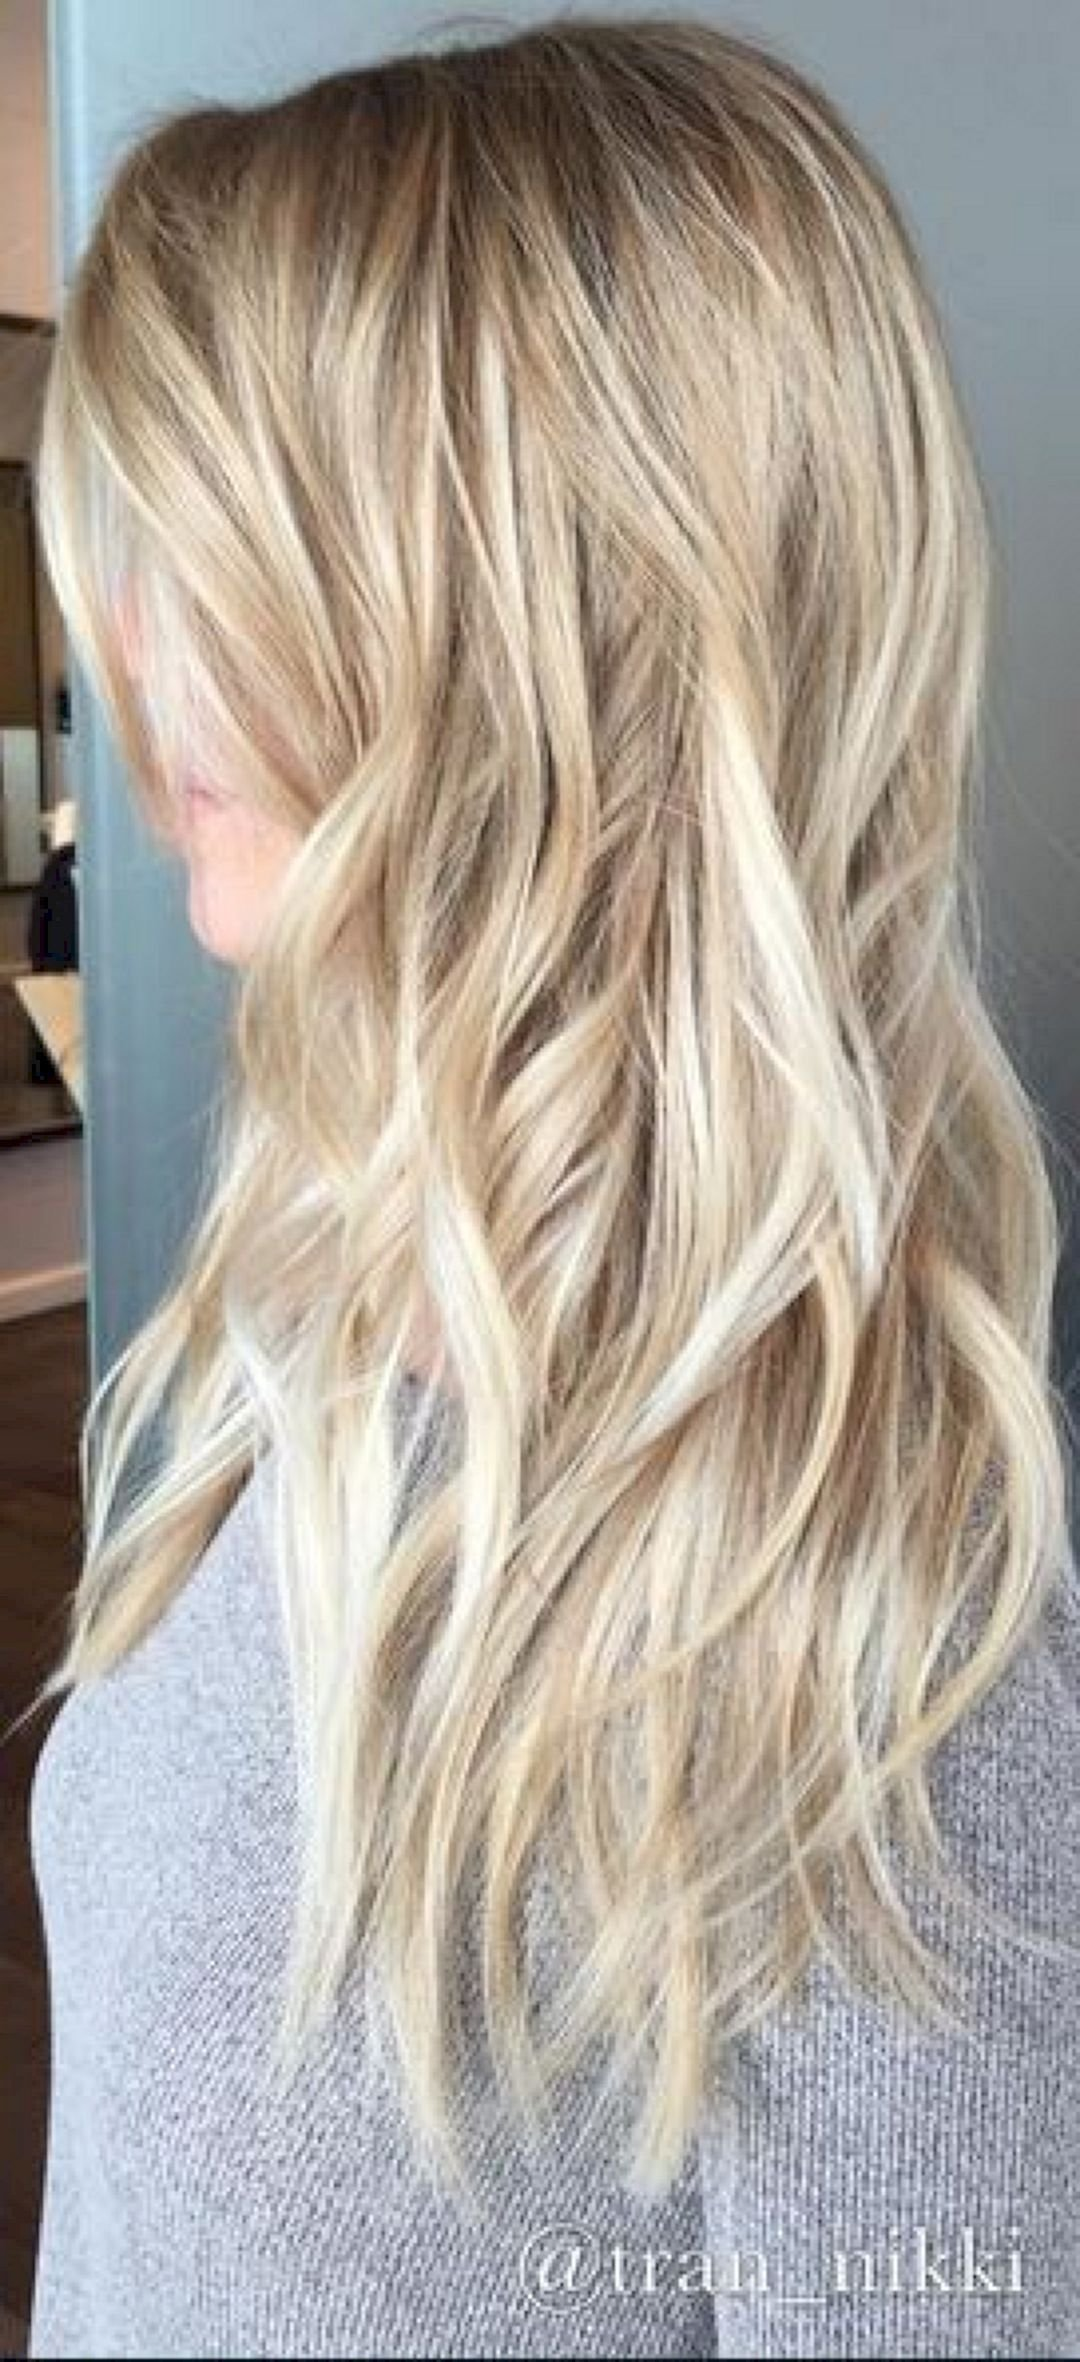 10 Attractive Hair Coloring Ideas For Blondes